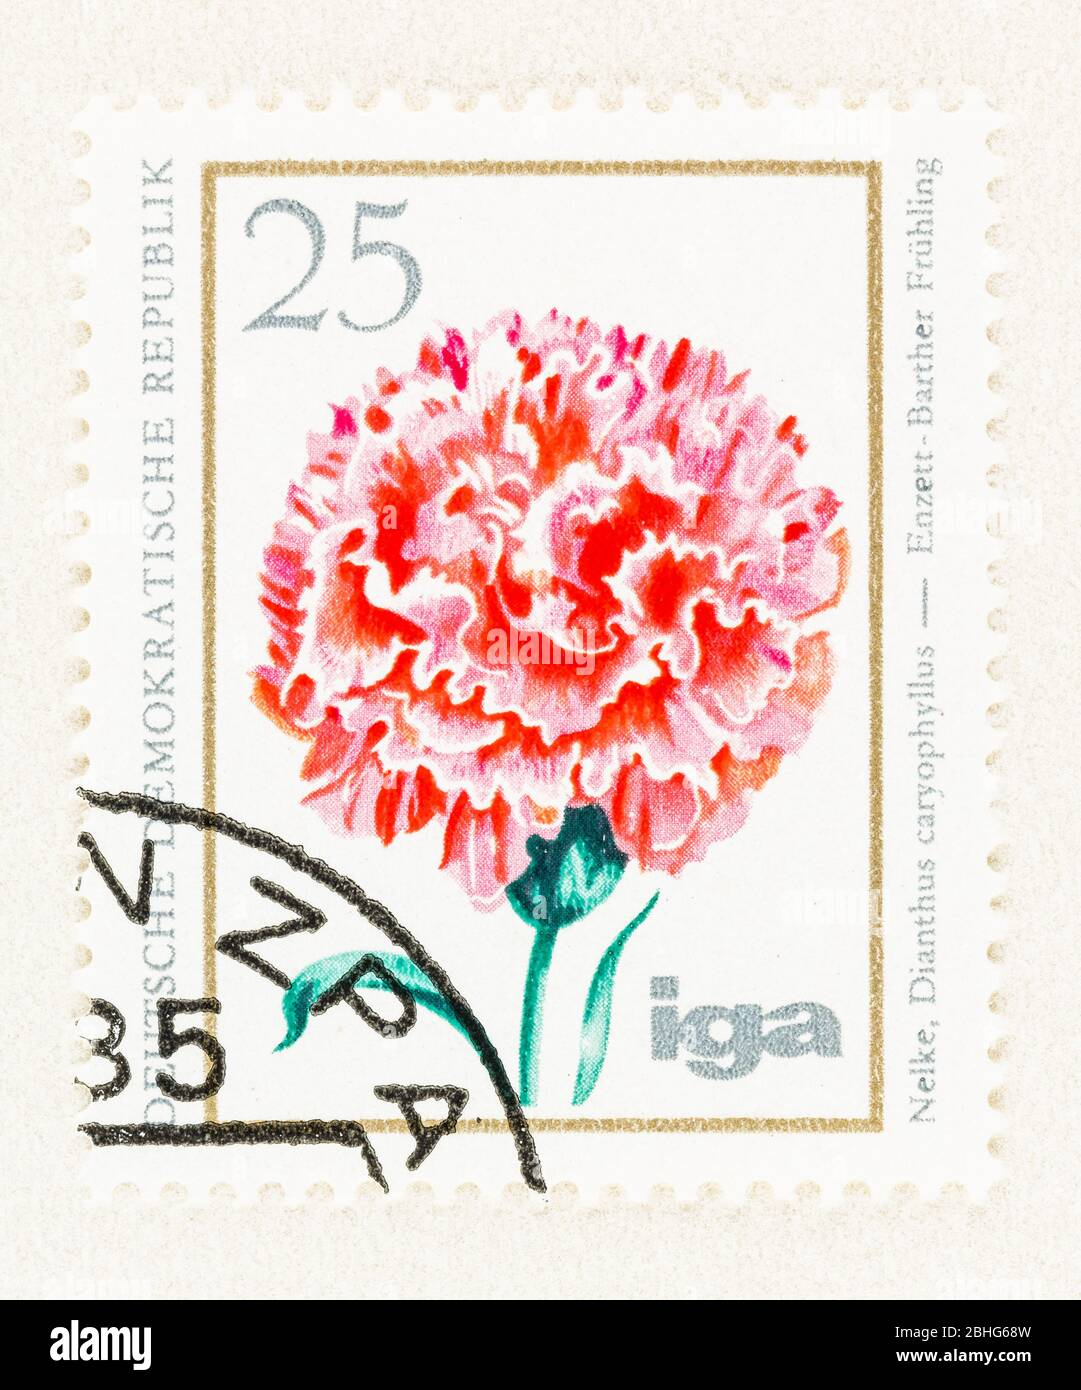 SEATTLE WASHINGTON - April 25, 2020: 1975 East Germany postage stamp featuring pink carnation in bloom. Scott # 1673 Stock Photo